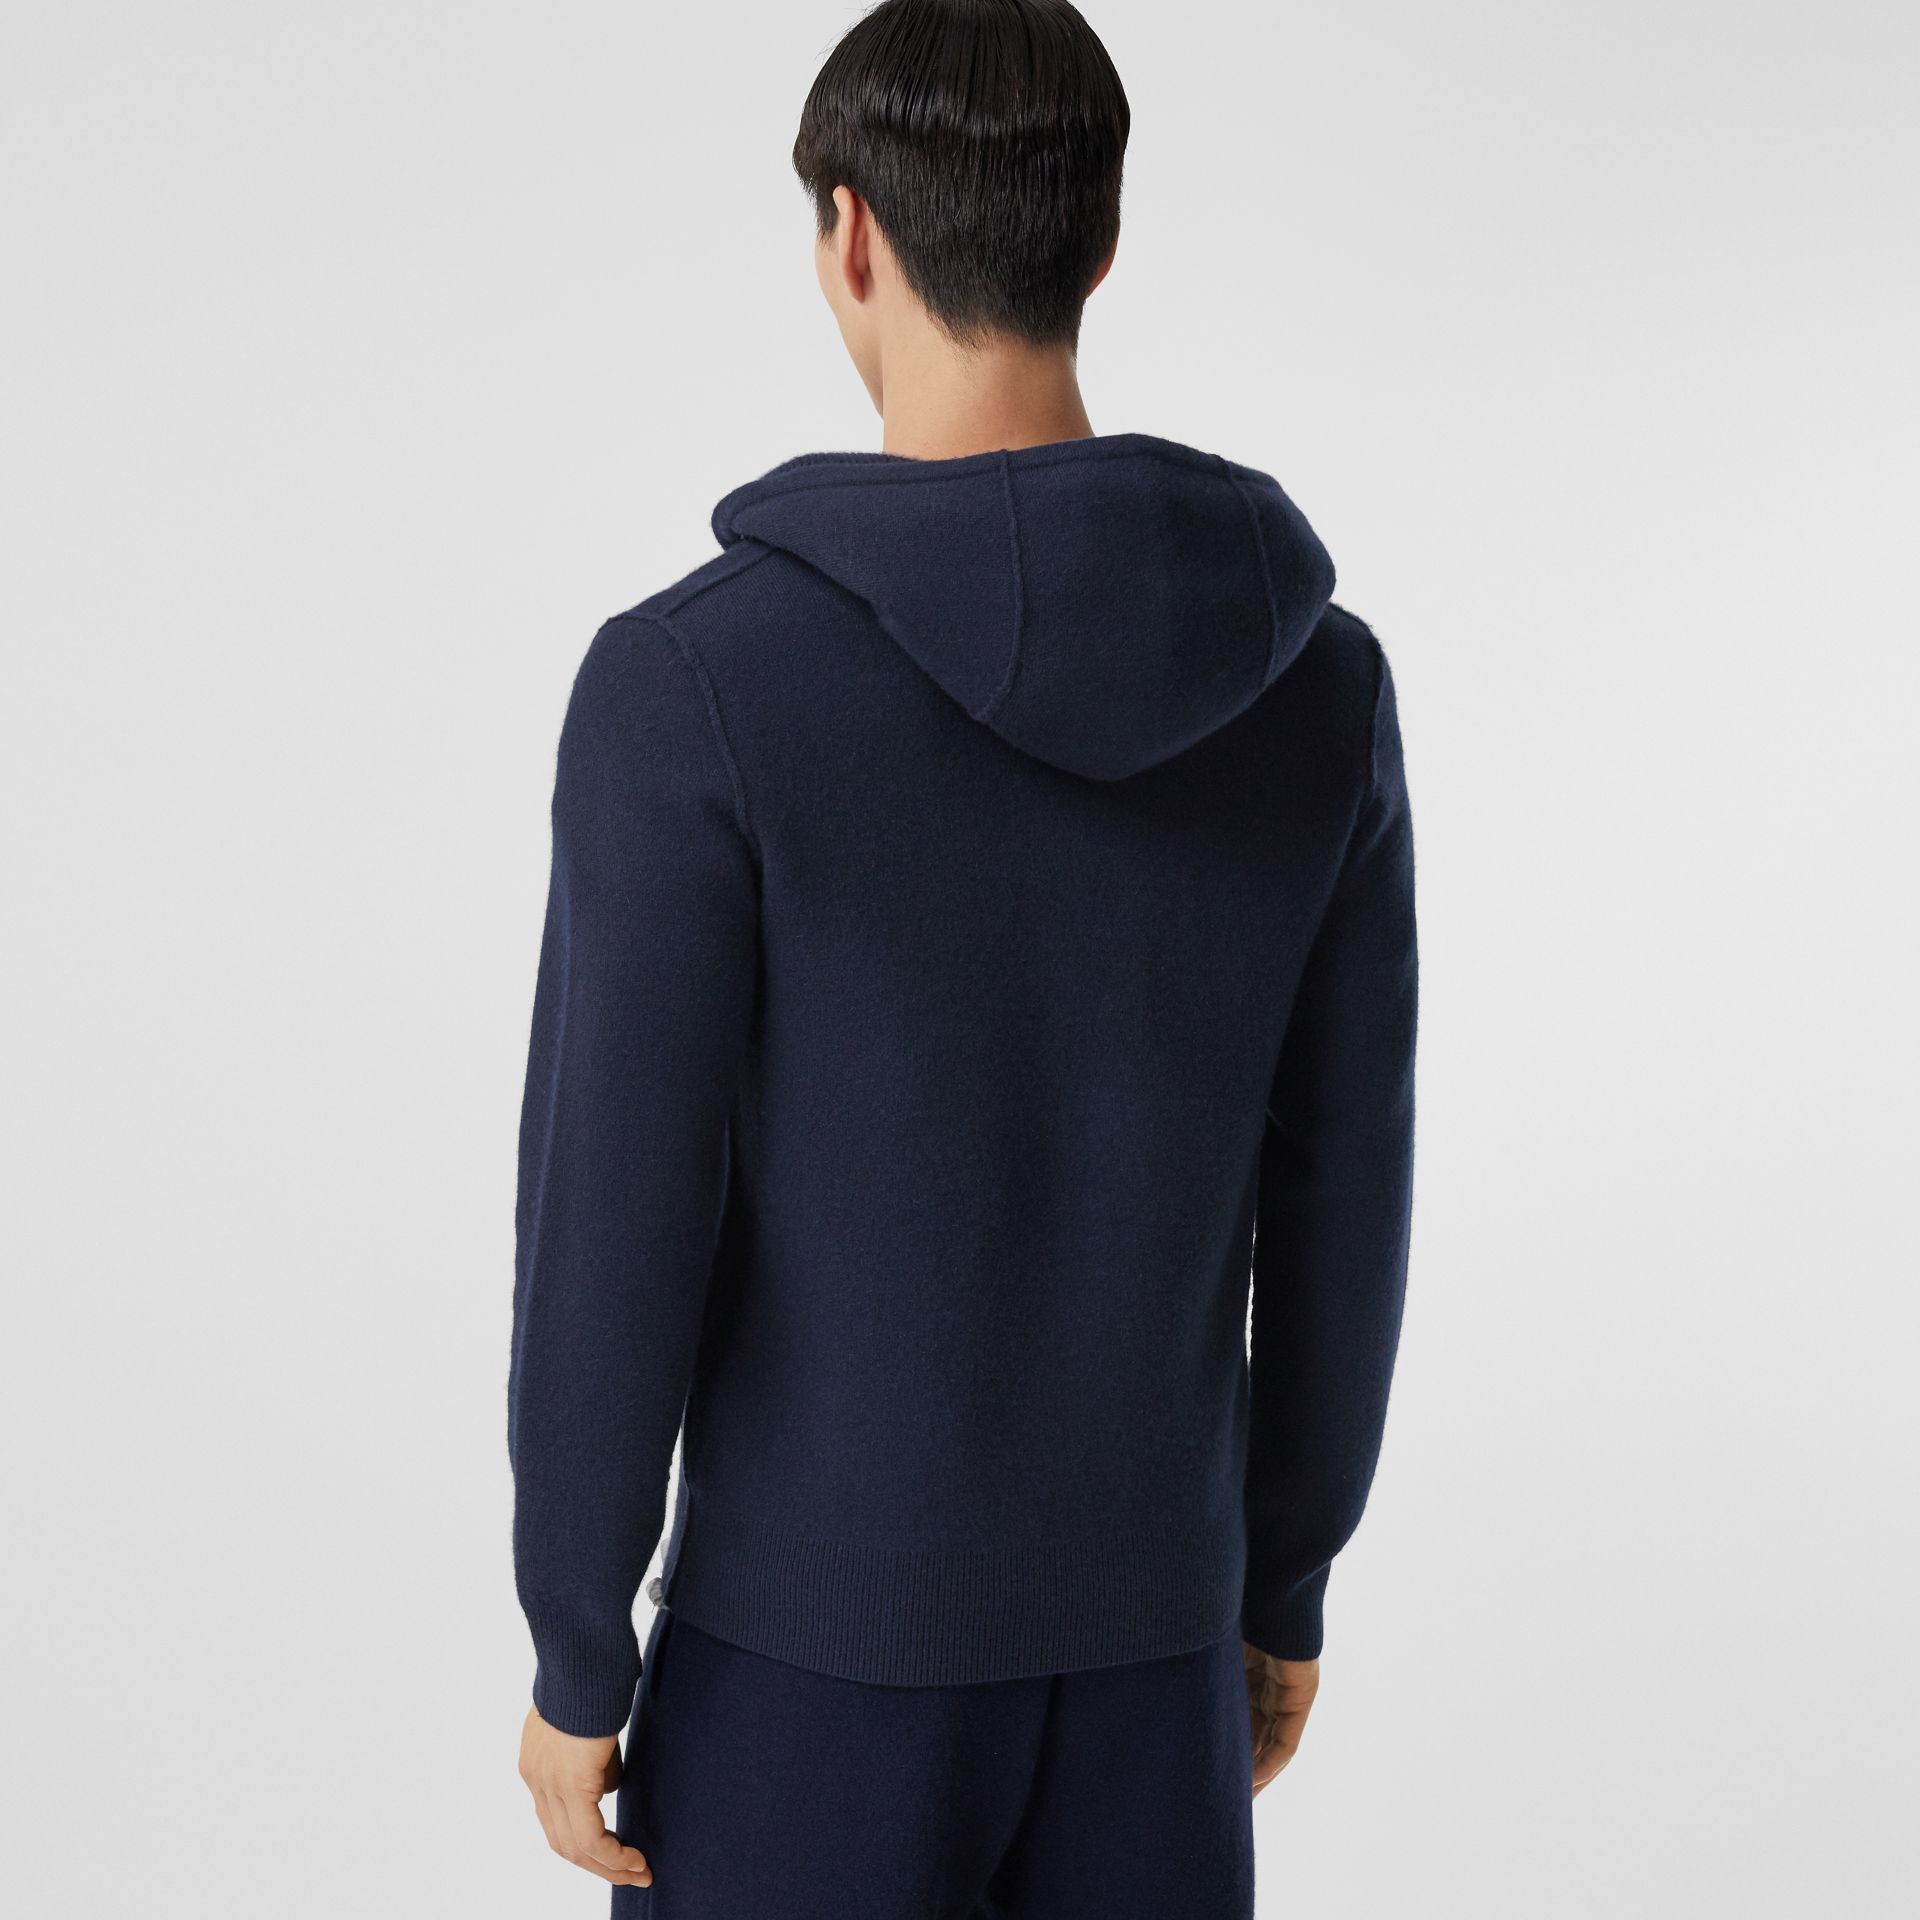 Monogram Motif Cashmere Blend Hooded Top in Navy - Men | Burberry - gallery image 2